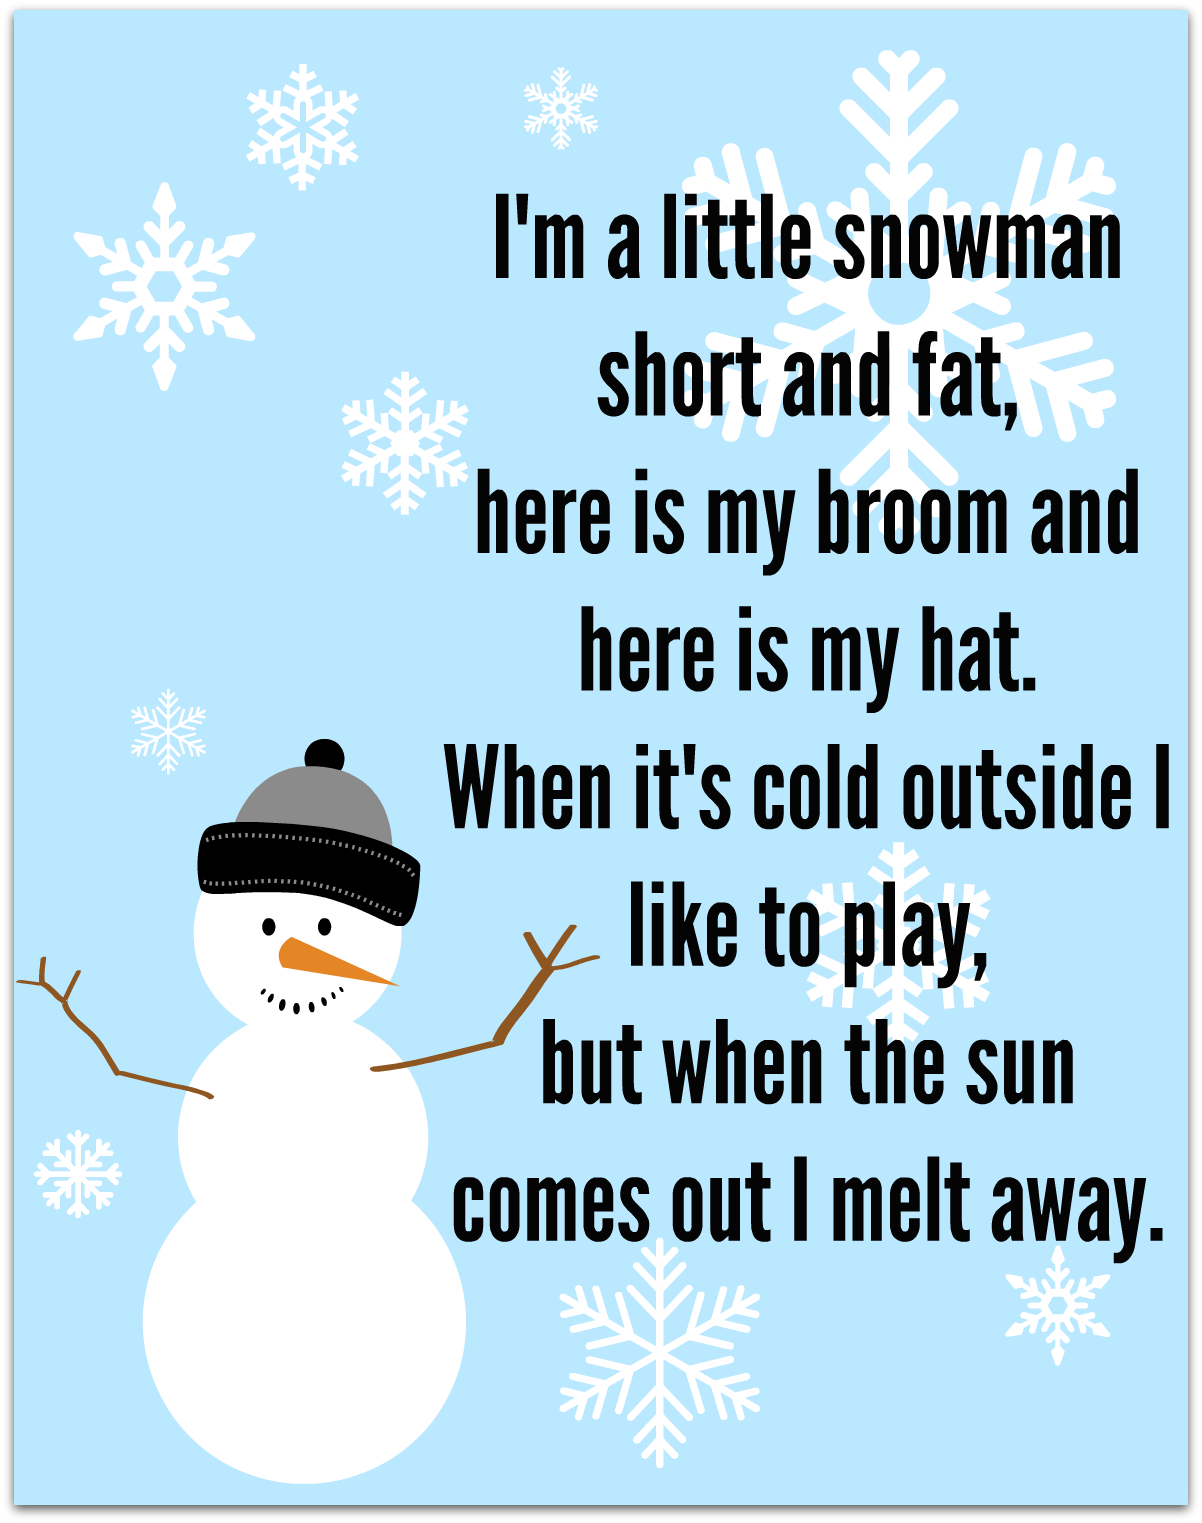 Snowman Song - FREE Printable - No Time For Flash Cards